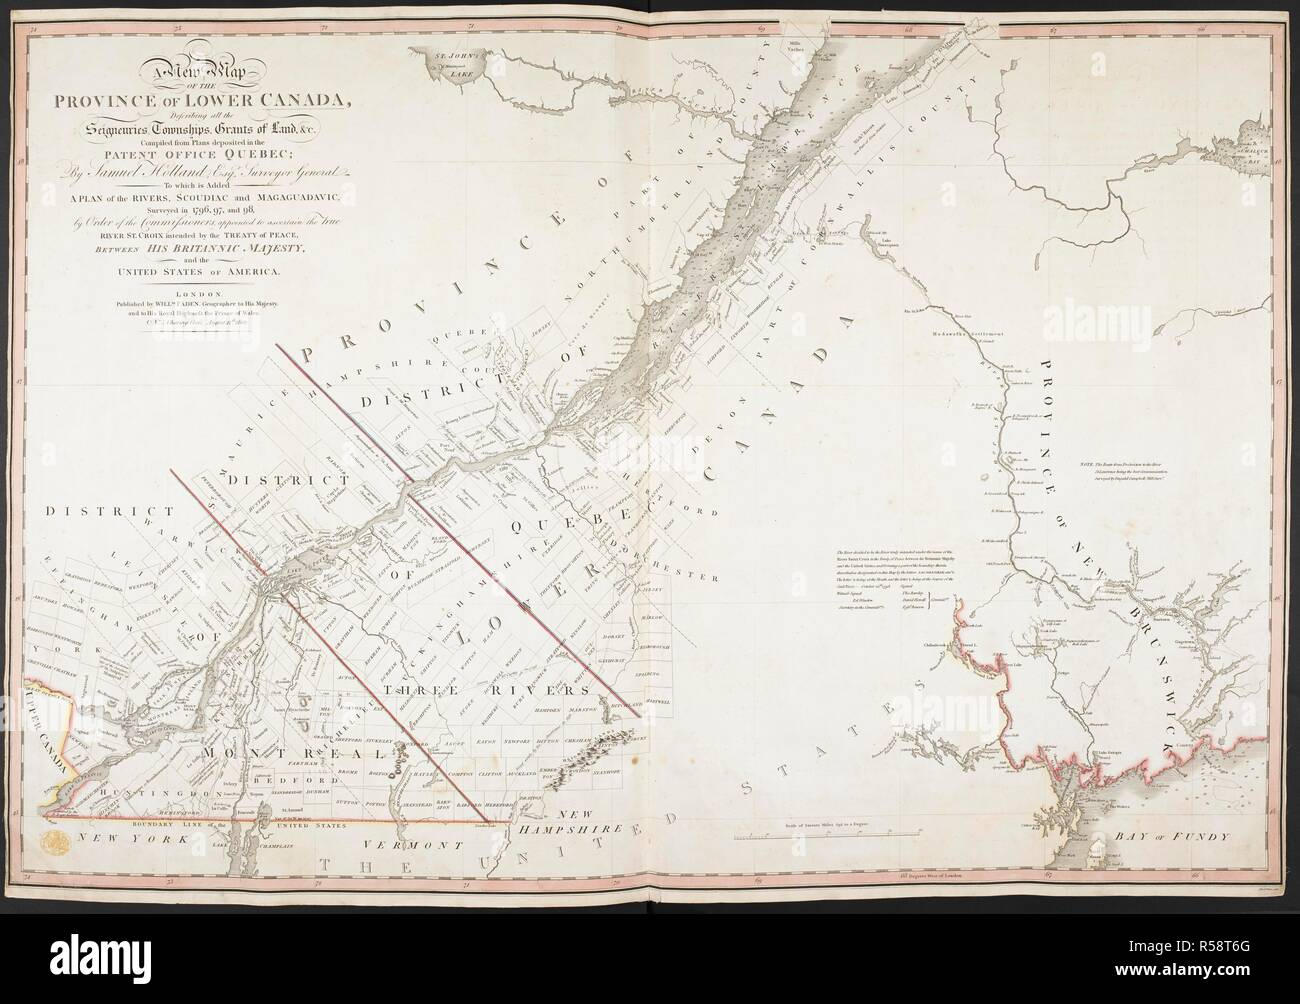 Map Of Canada To Colour.A New Map Of The Province Of Lower Canada A New Map Of The Province